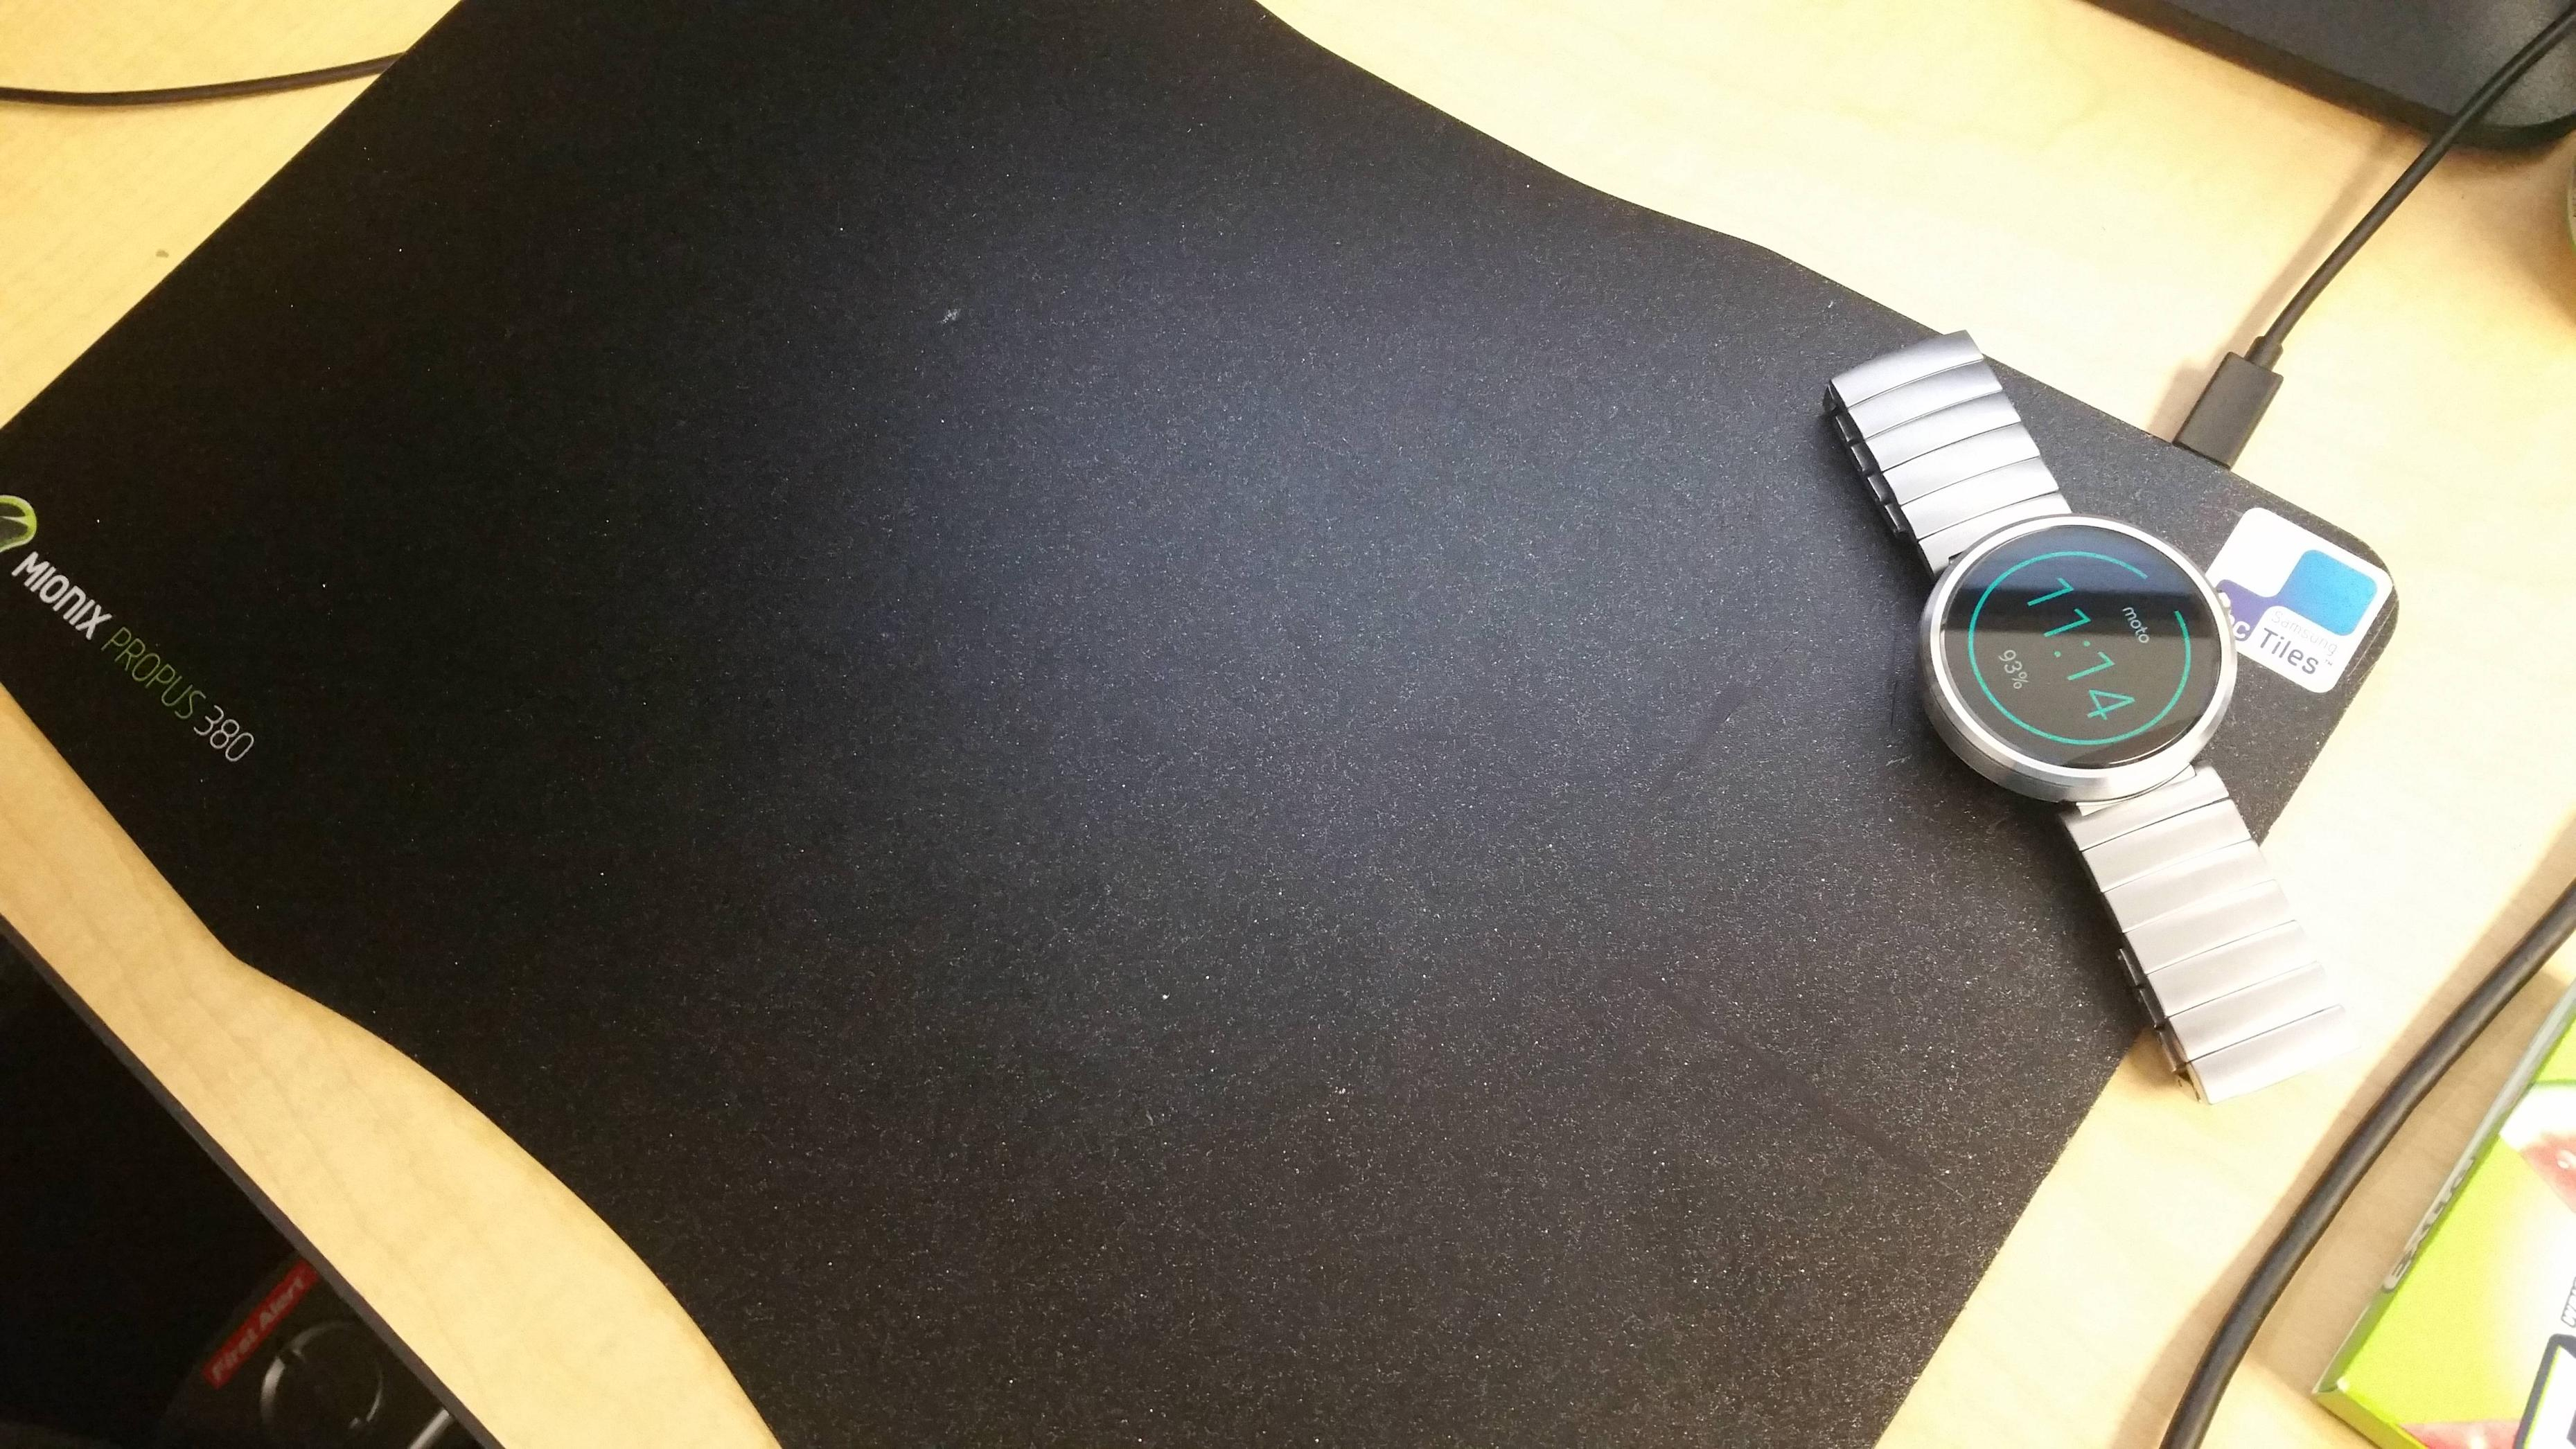 I Love Spreadsheets Mouse Mat With Regard To Built A Wireless Charger Into My Mousepad : Androidwear